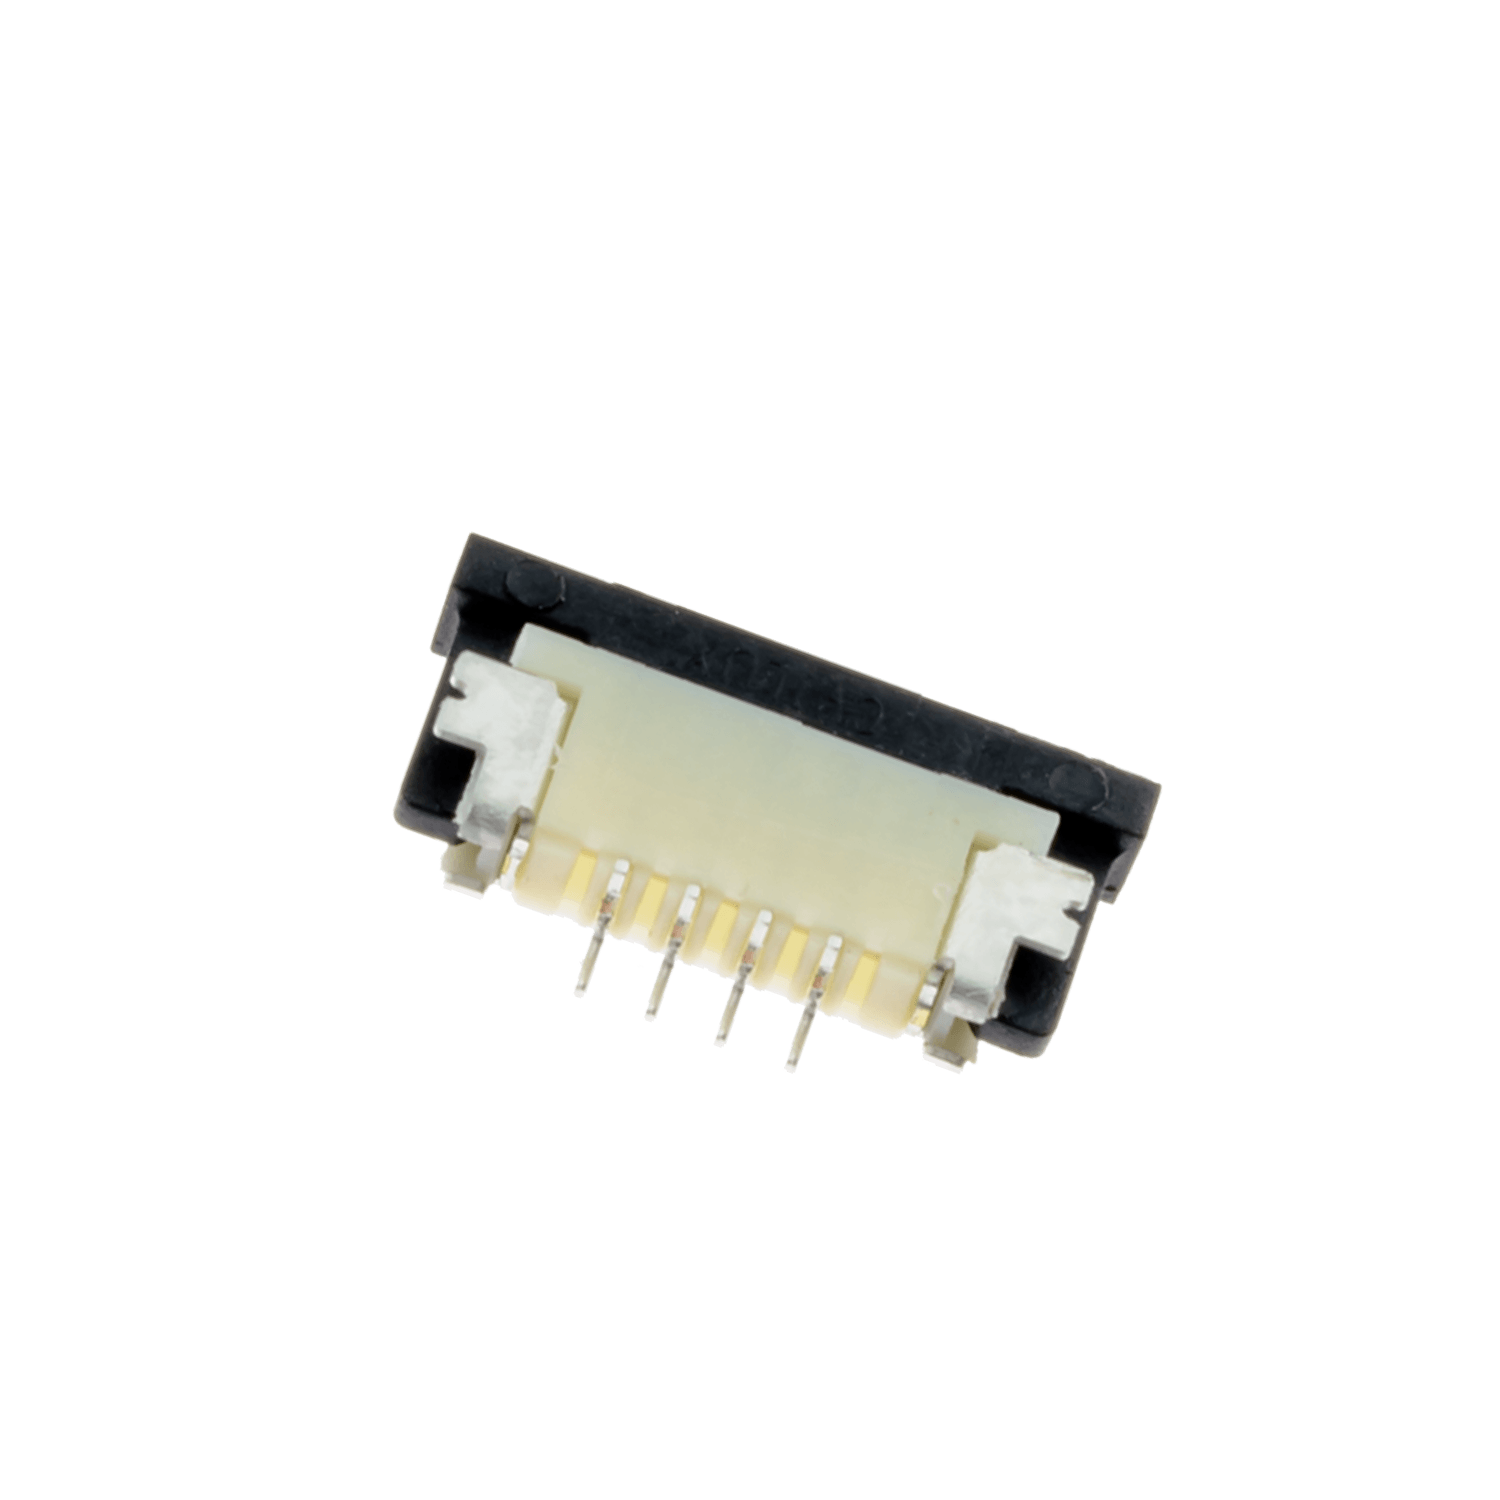 ZIF1004DH – ZIF connector, 1 mm pitch, 4 pins, downside contact